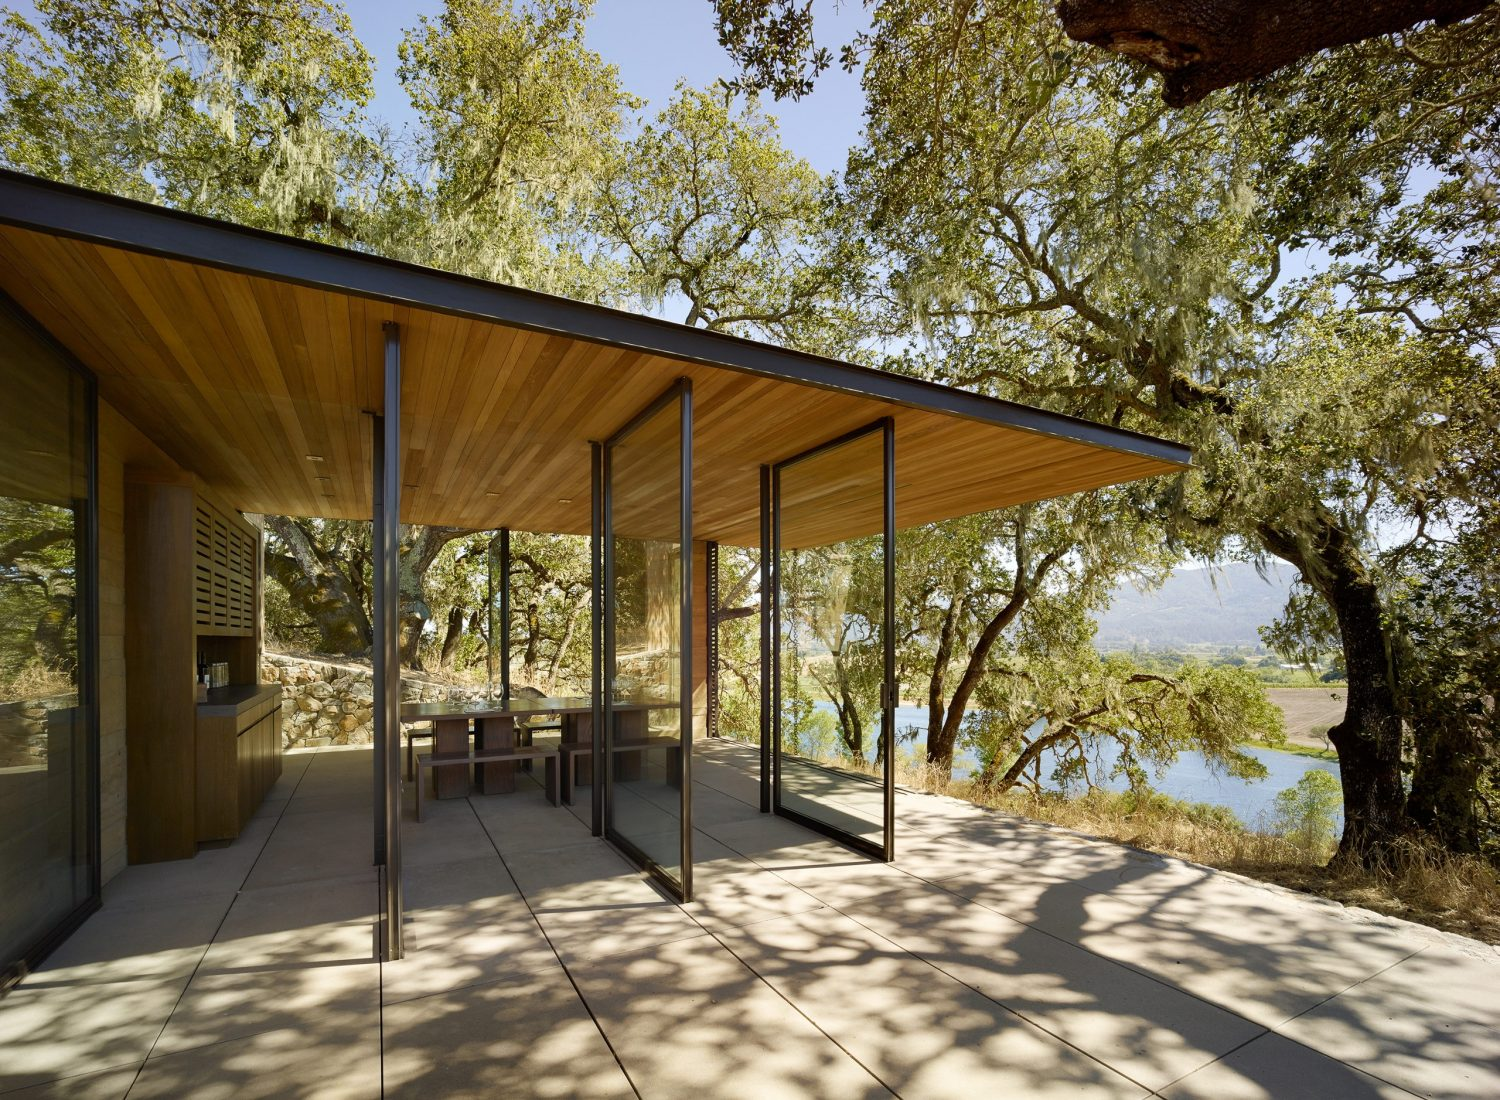 Quintessa Pavilions | Wine-Tasting Pavilions by Walker Warner Architects